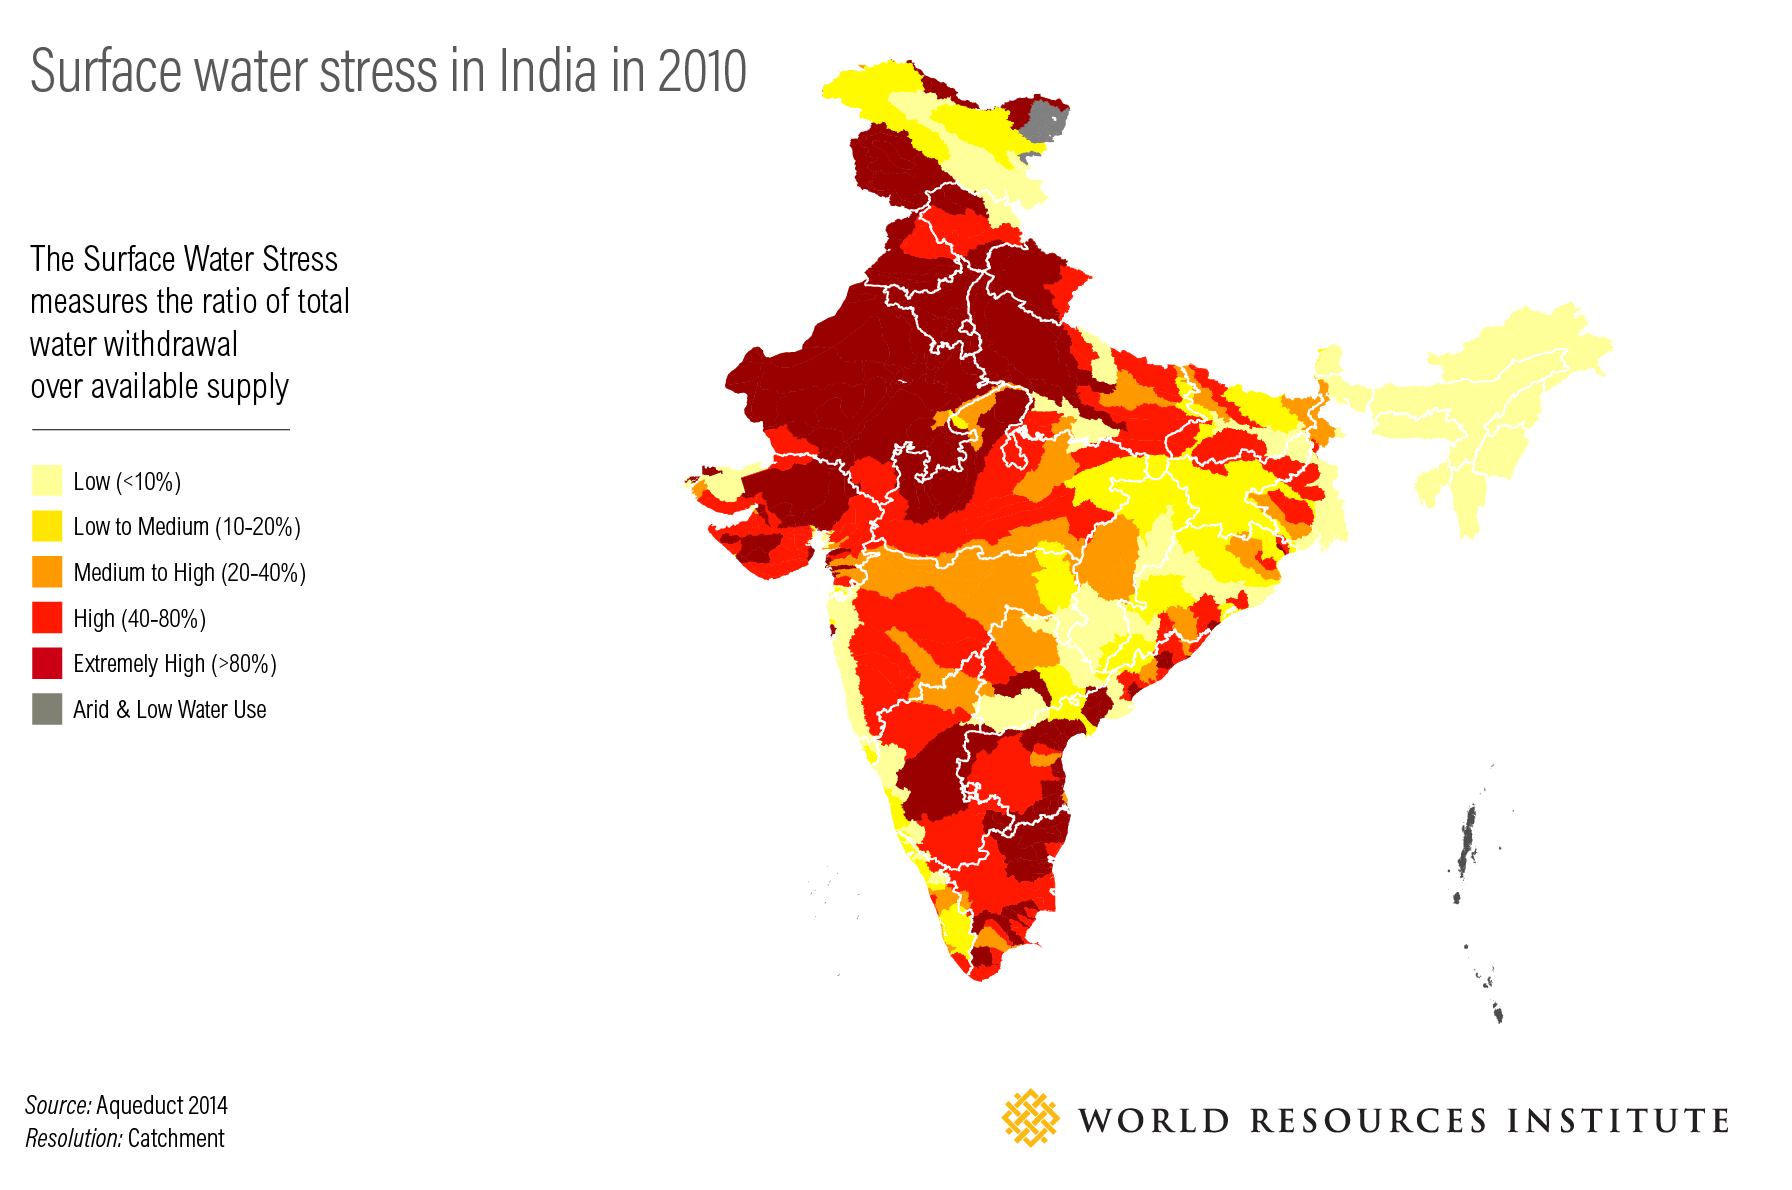 <p>Figure 1: Surface water stress in India in 2010</p>